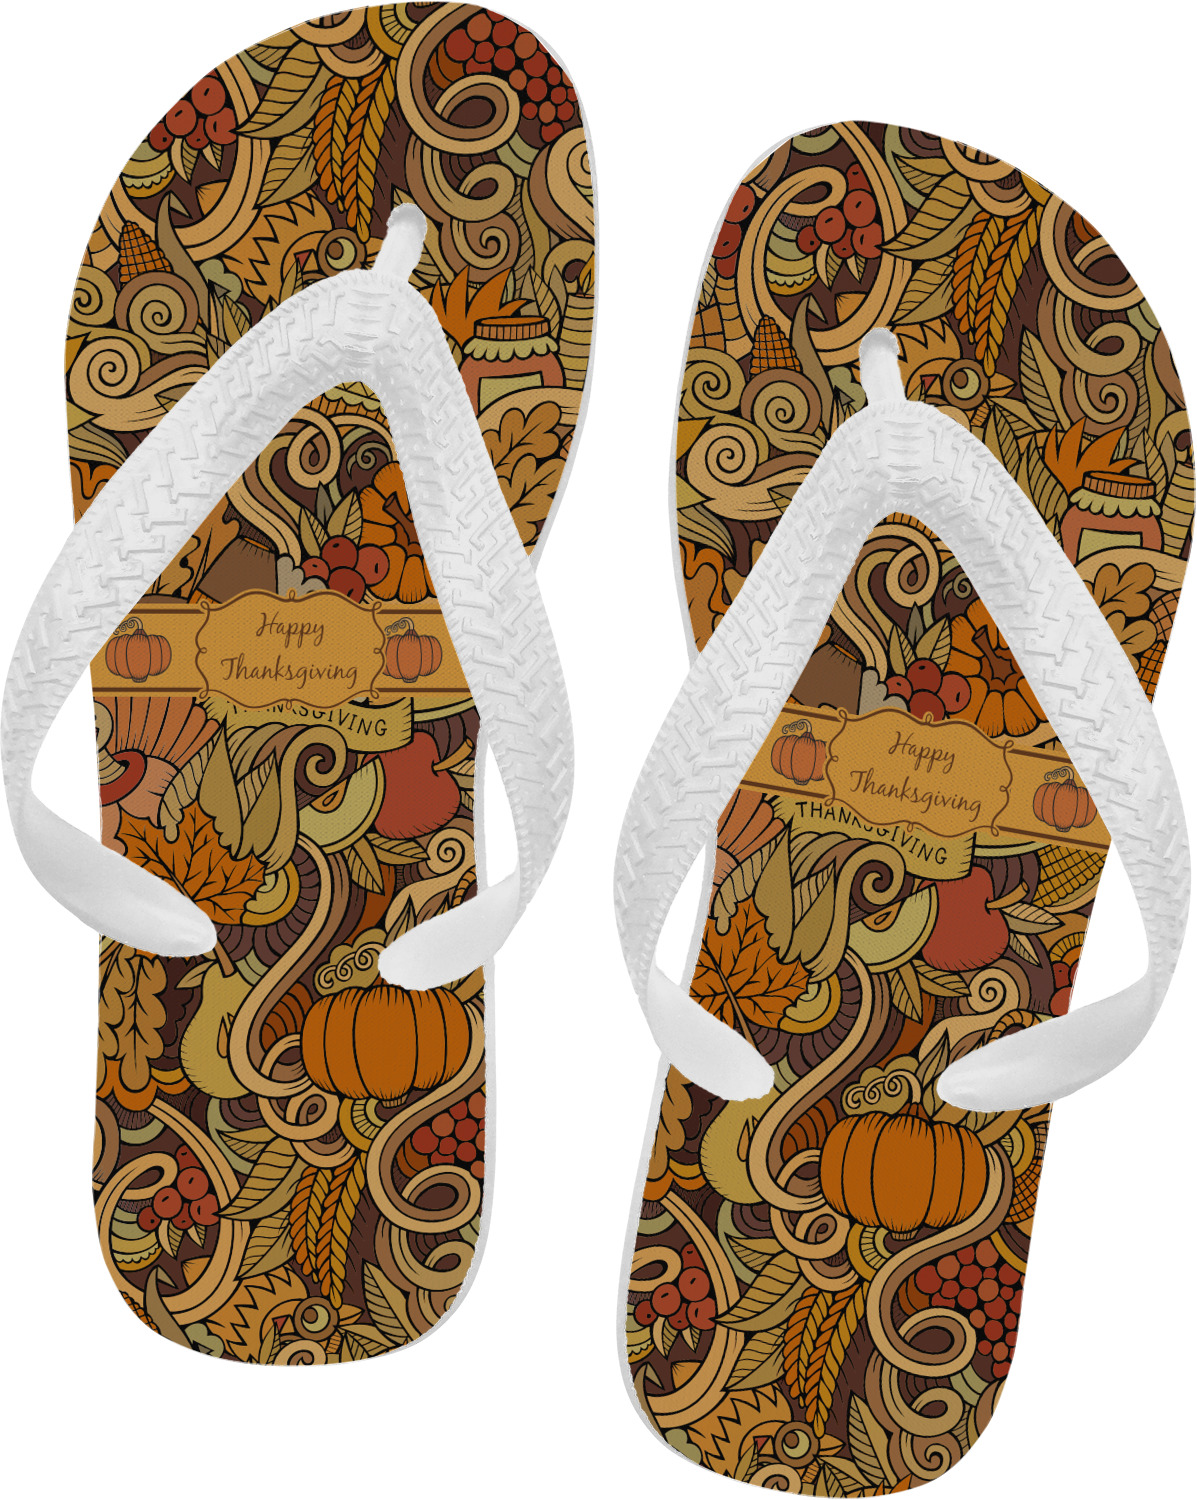 92a9f02a7c02 Thanksgiving Flip Flops (Personalized) - YouCustomizeIt